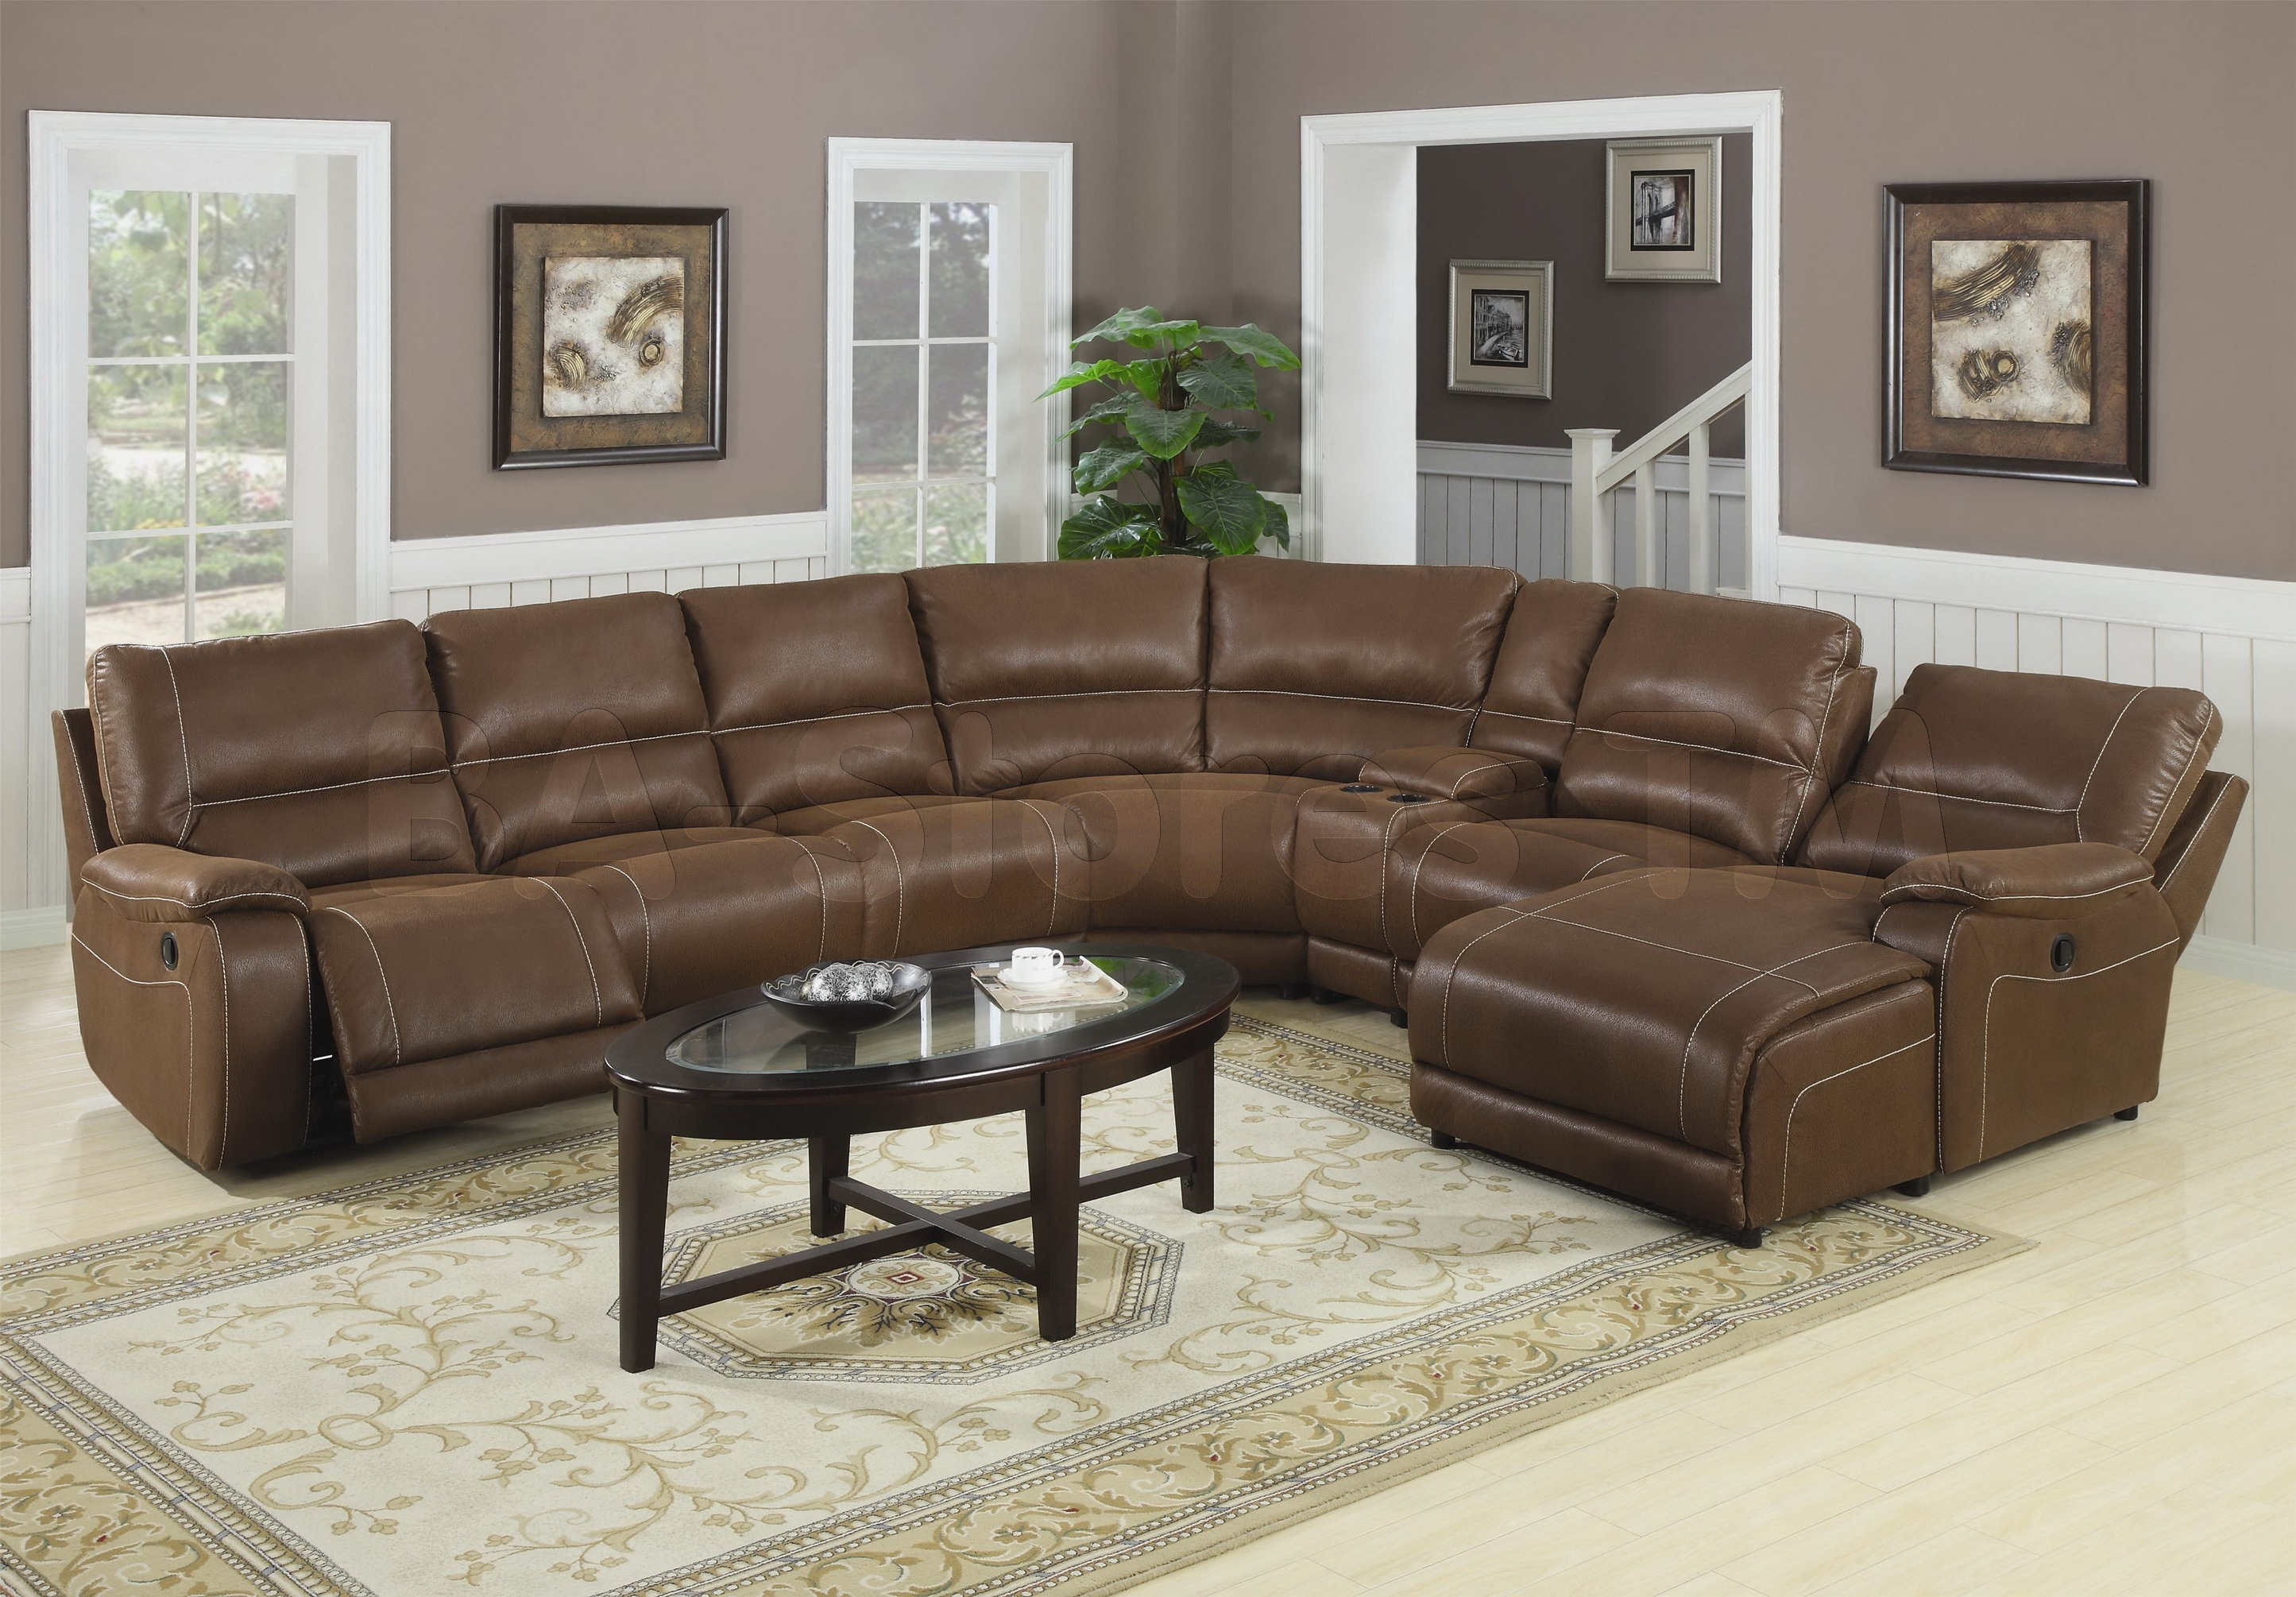 Sectional Sofa Design: Simple Large Sectional Sofa With Chaise Throughout Large Sectional Sofas (Image 8 of 10)